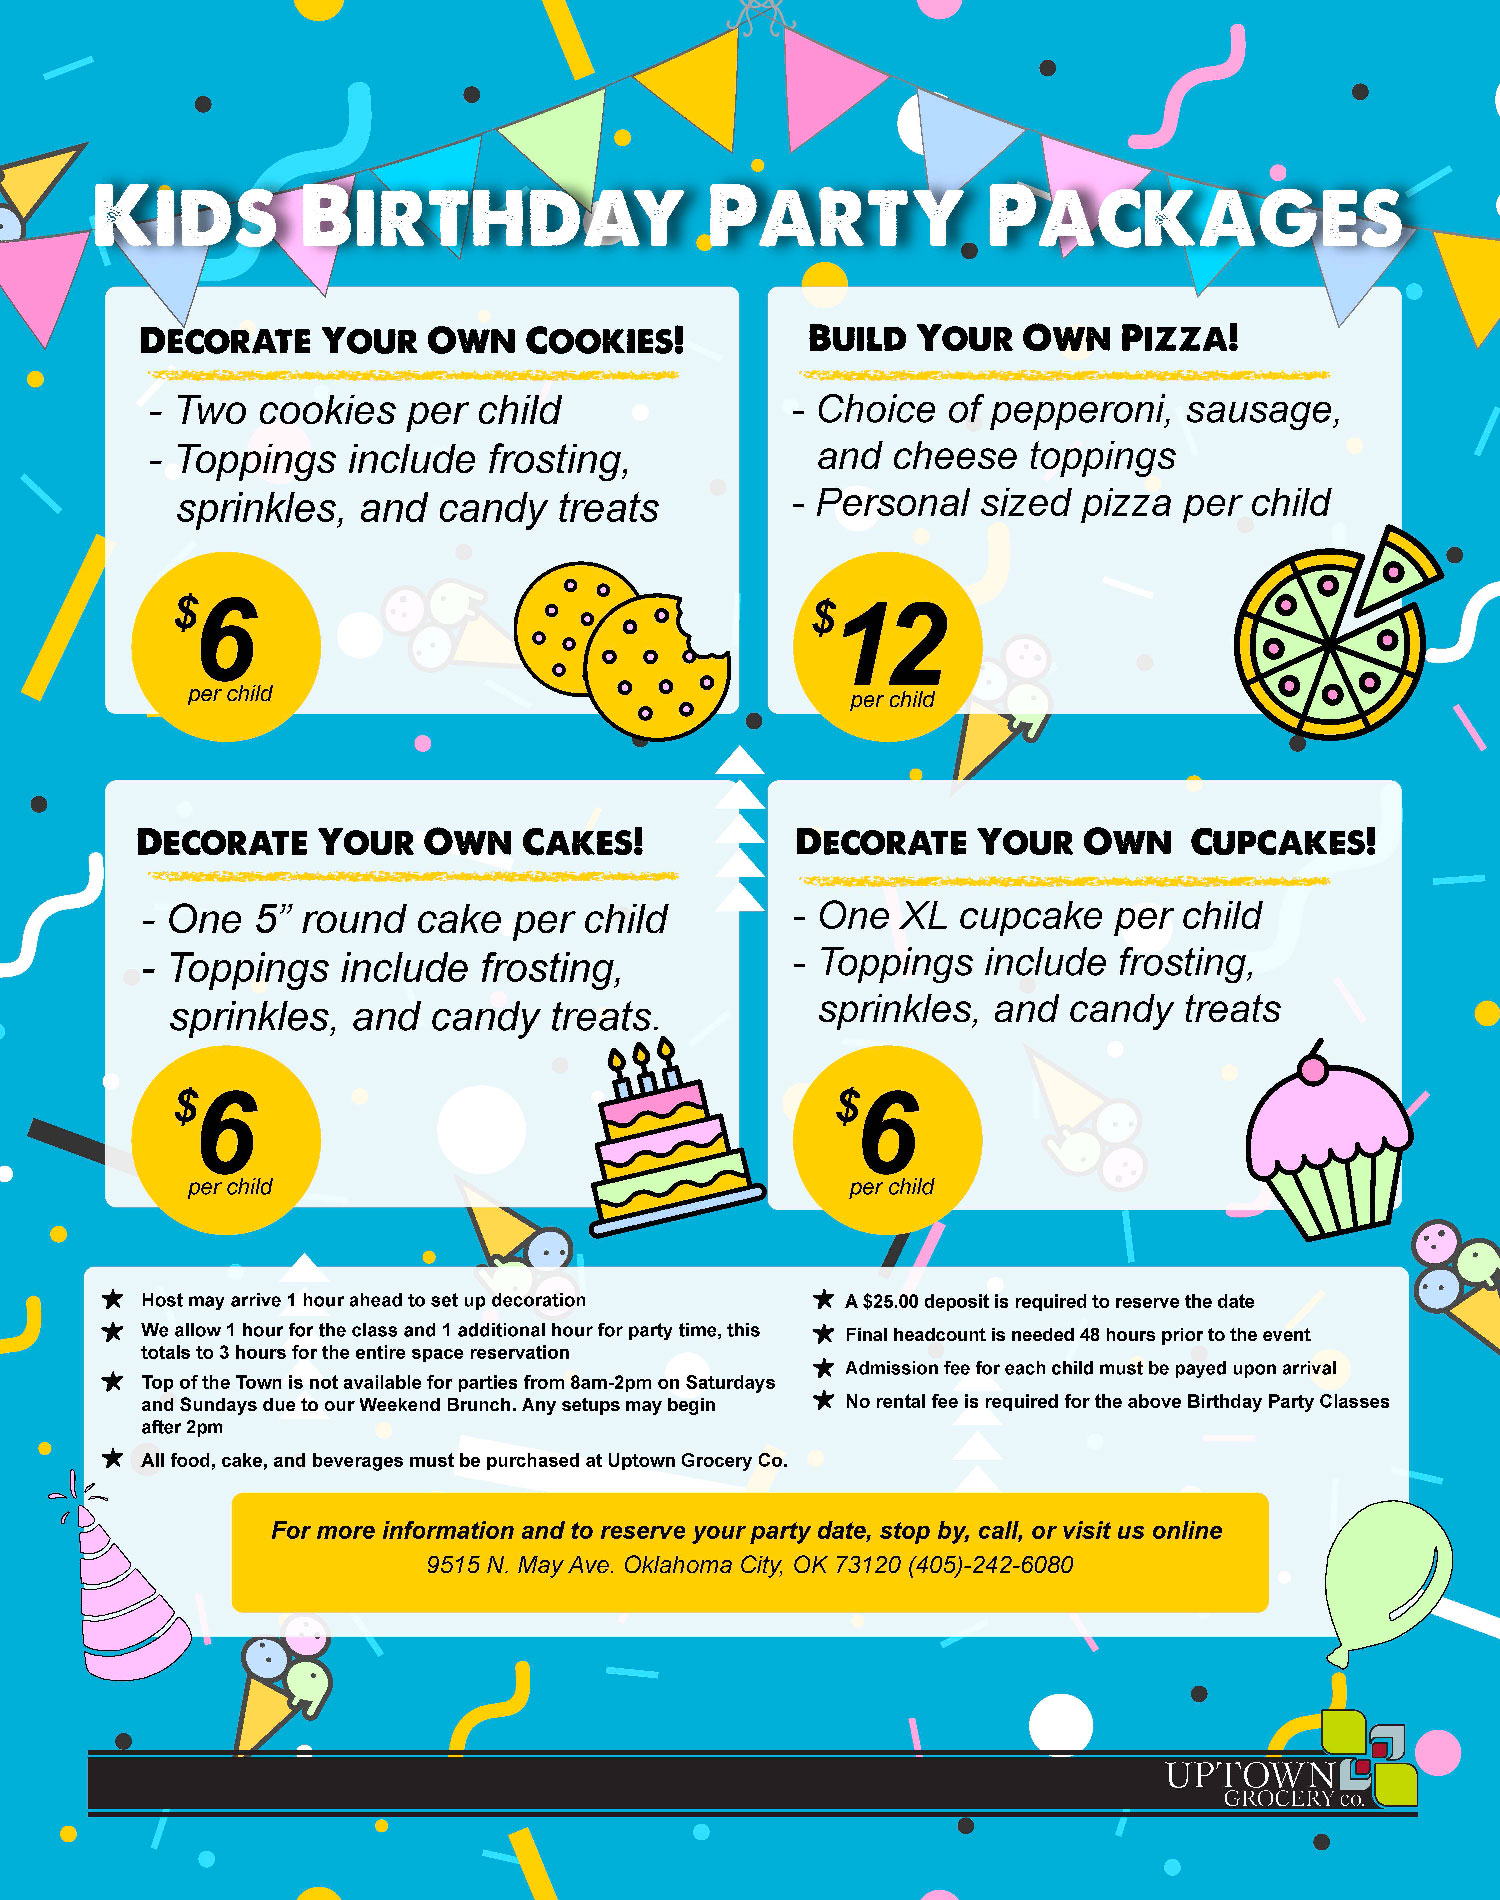 Kids Birthday Party Packages - Uptown Grocery Co